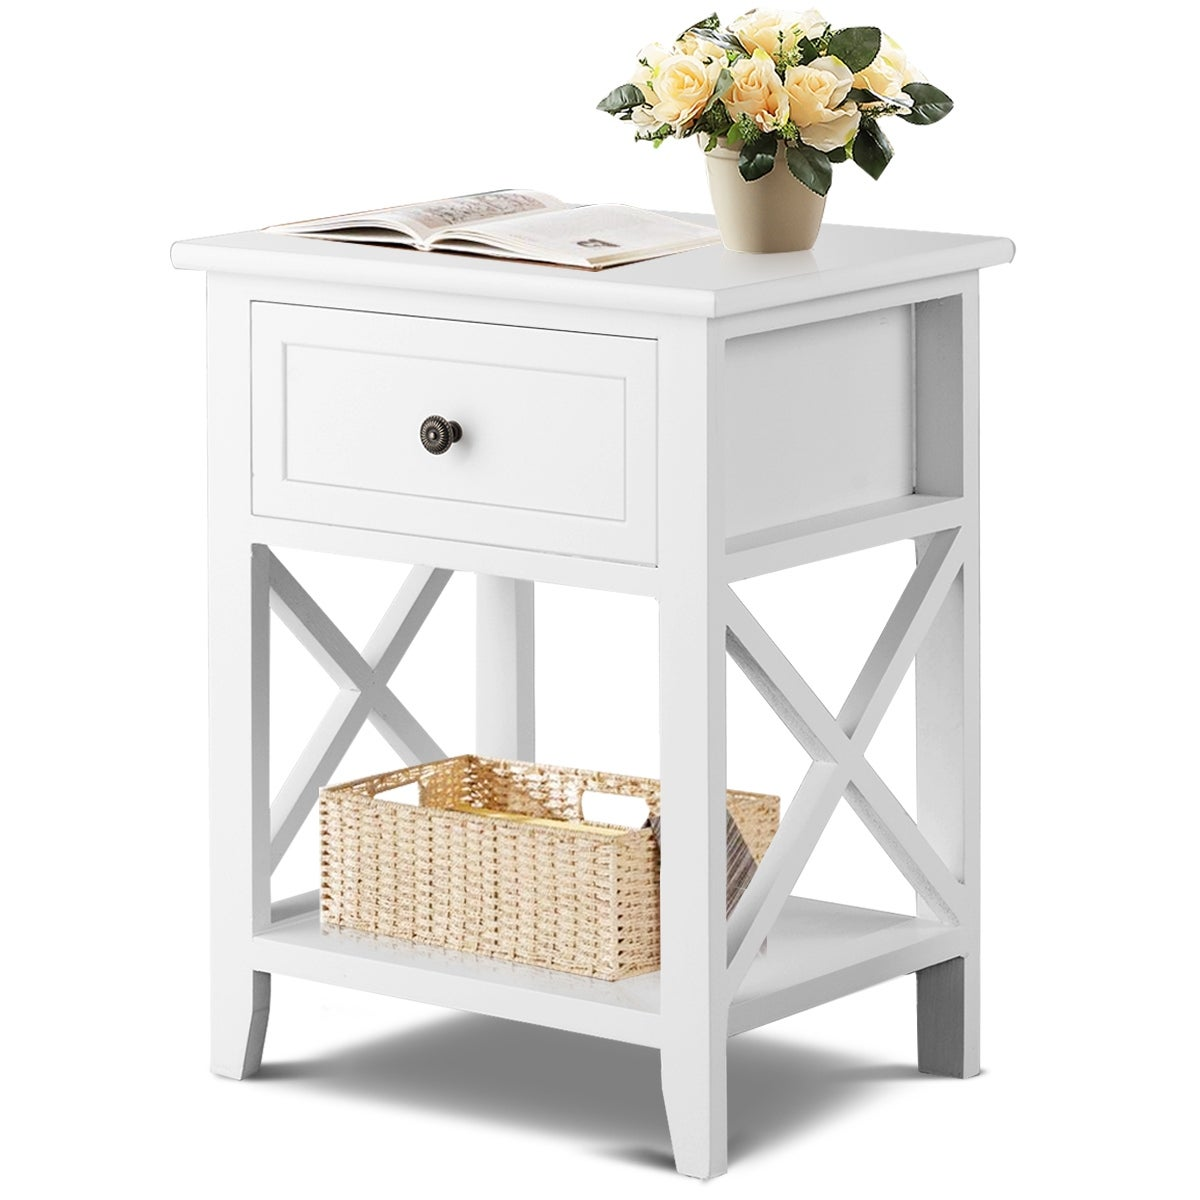 End Tables Small Nightstand Bedside Table End Table Side Table Sofa Table Double Shelf With Drawer For Storage Modern Design Color Blue Easy Assembly And Sturdy Nightstand Home